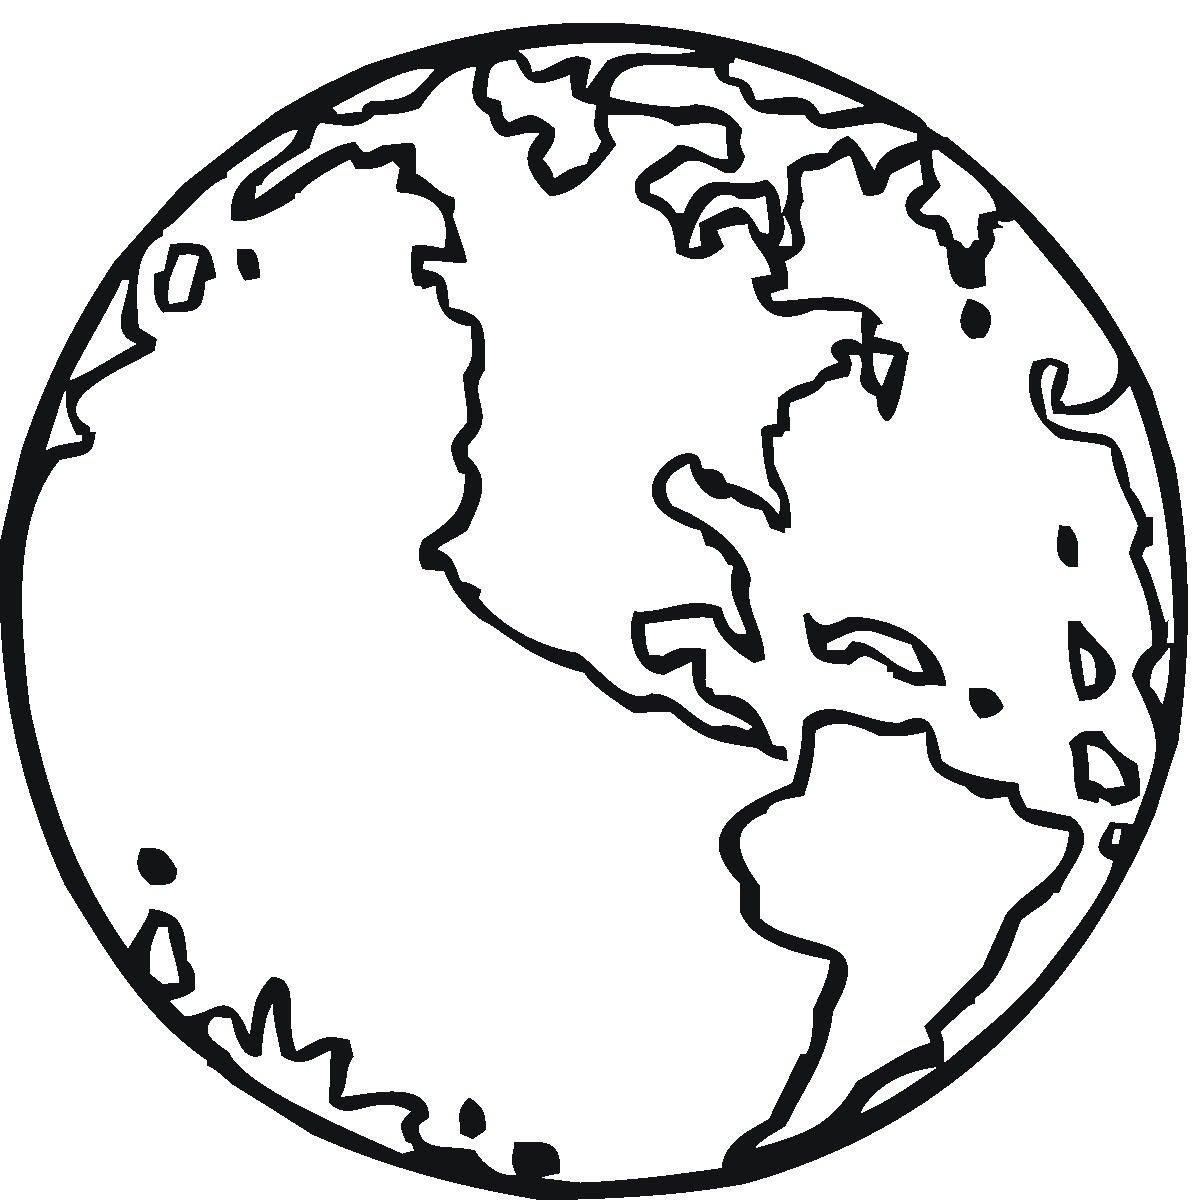 Free Printable Earth Coloring Pages For Kids Earth Coloring Pages Earth Day Coloring Pages Coloring Pages